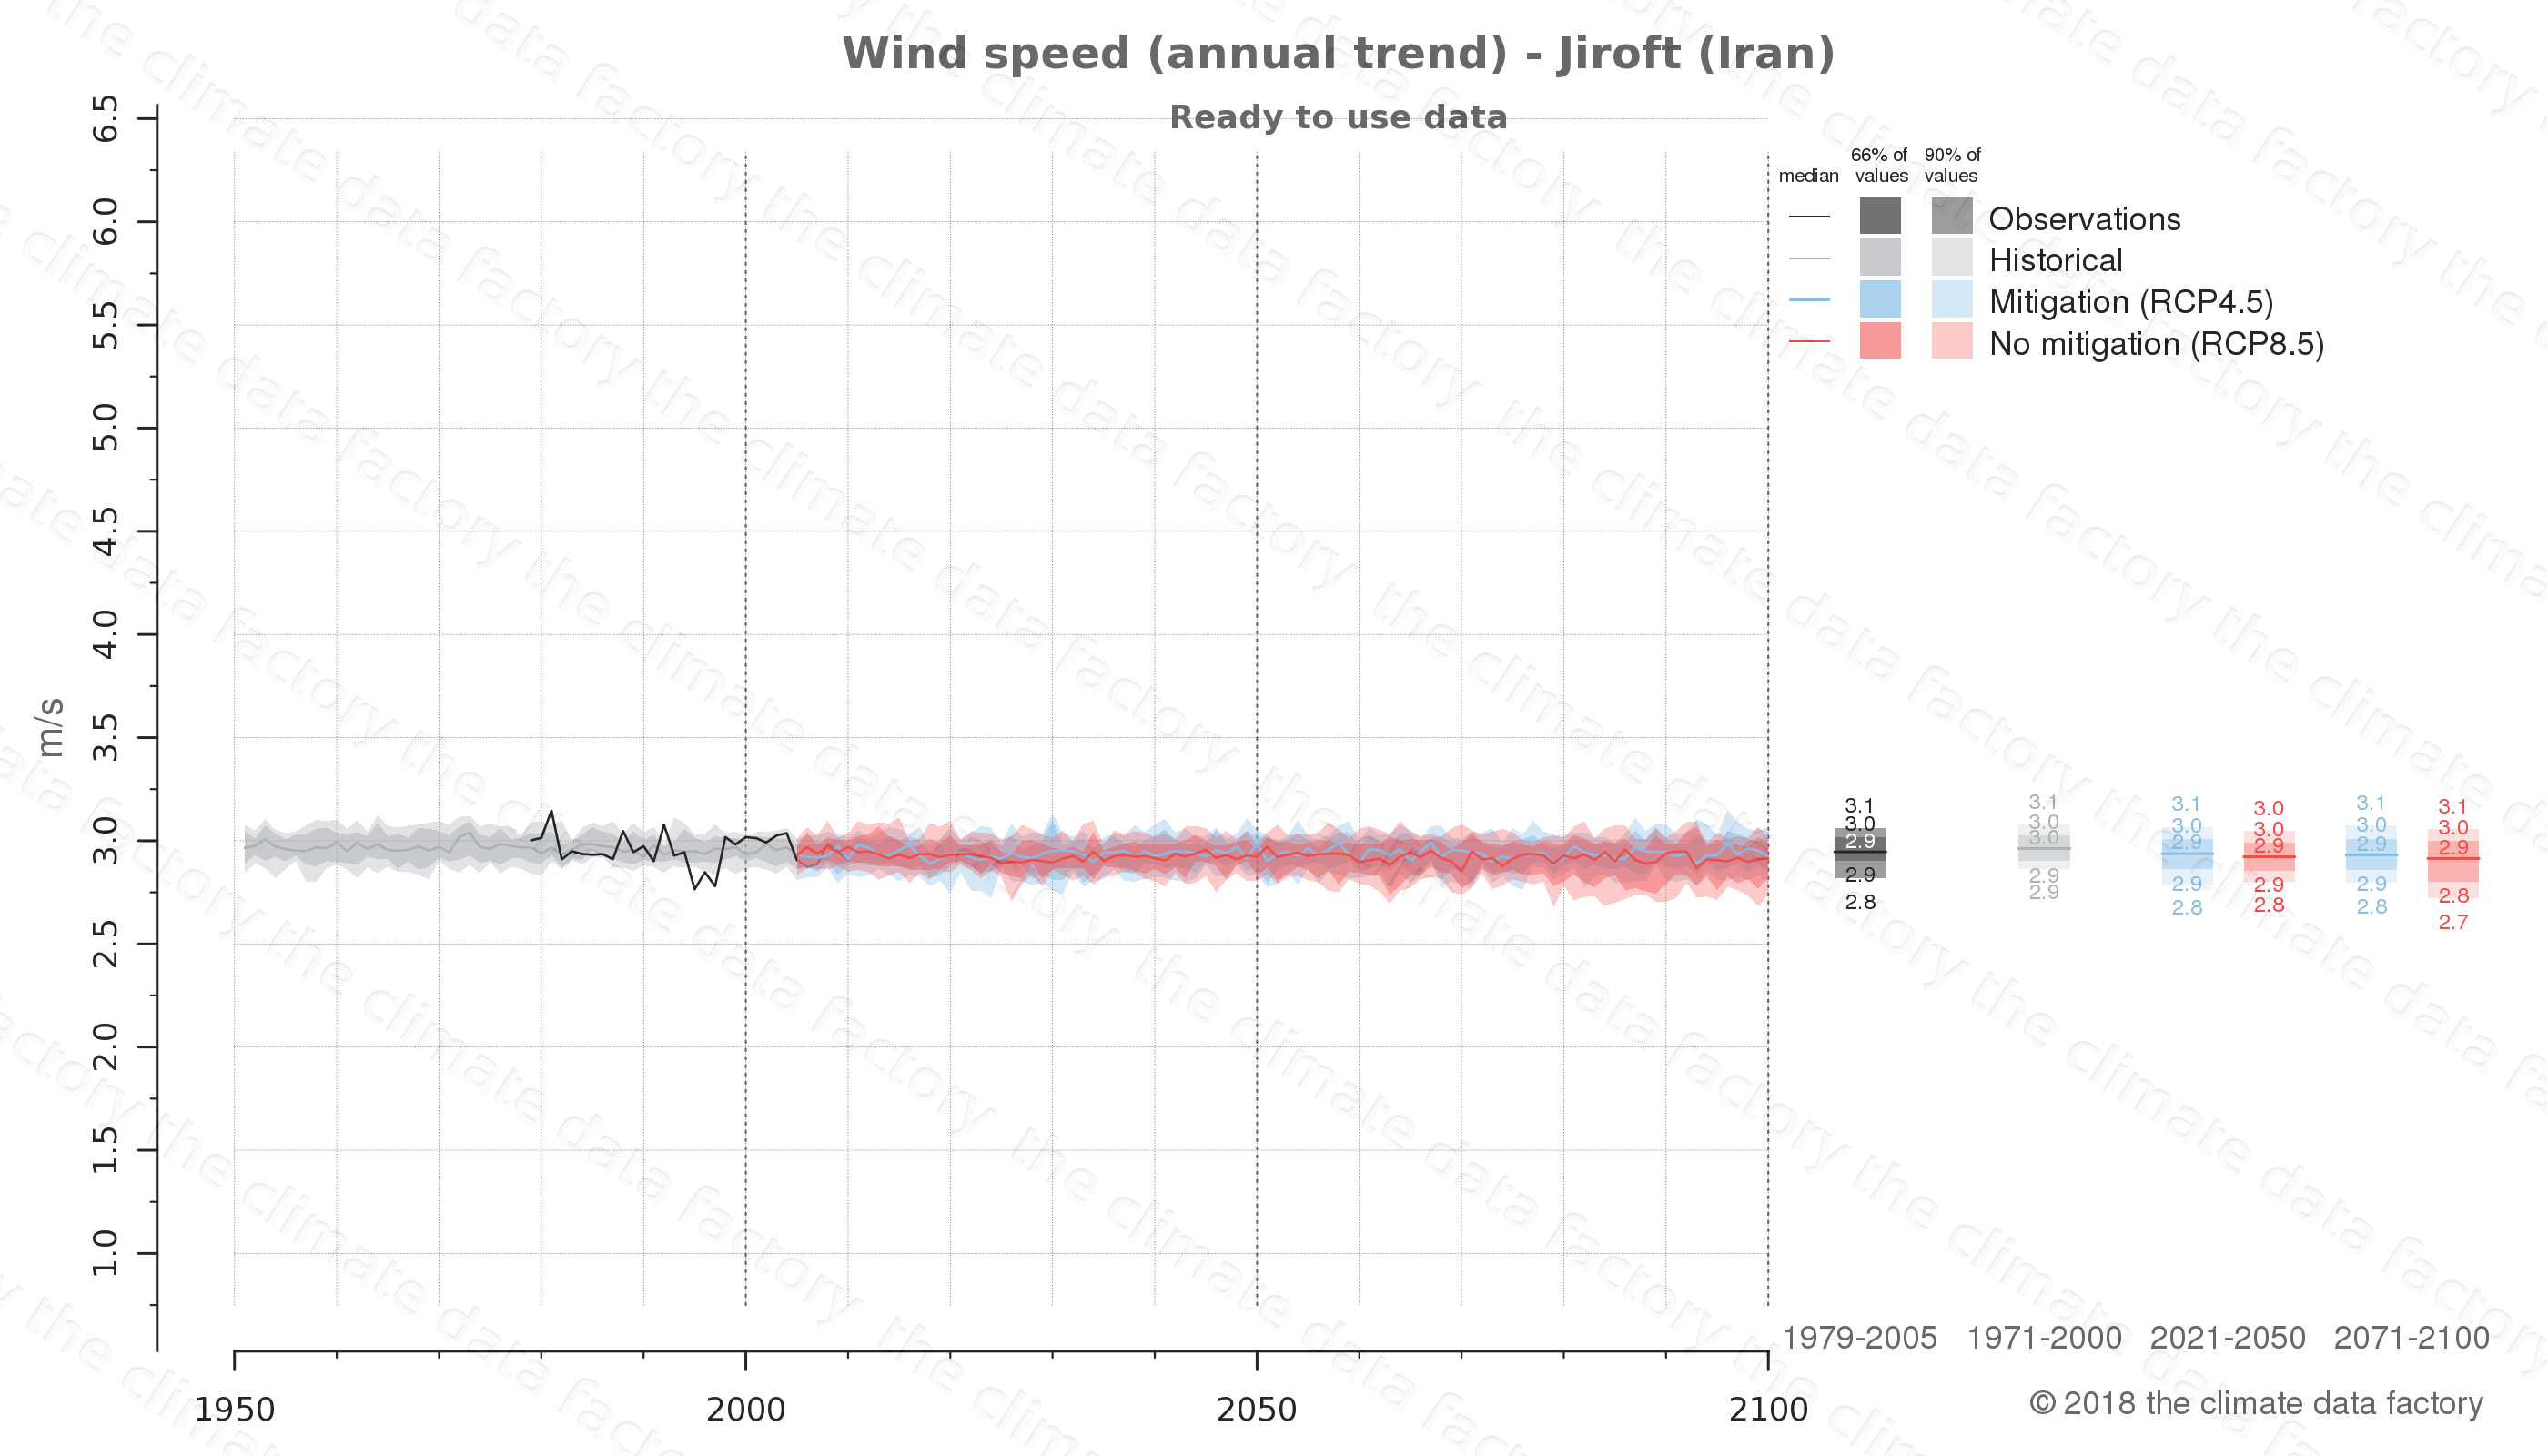 climate change data policy adaptation climate graph city data wind-speed jiroft iran